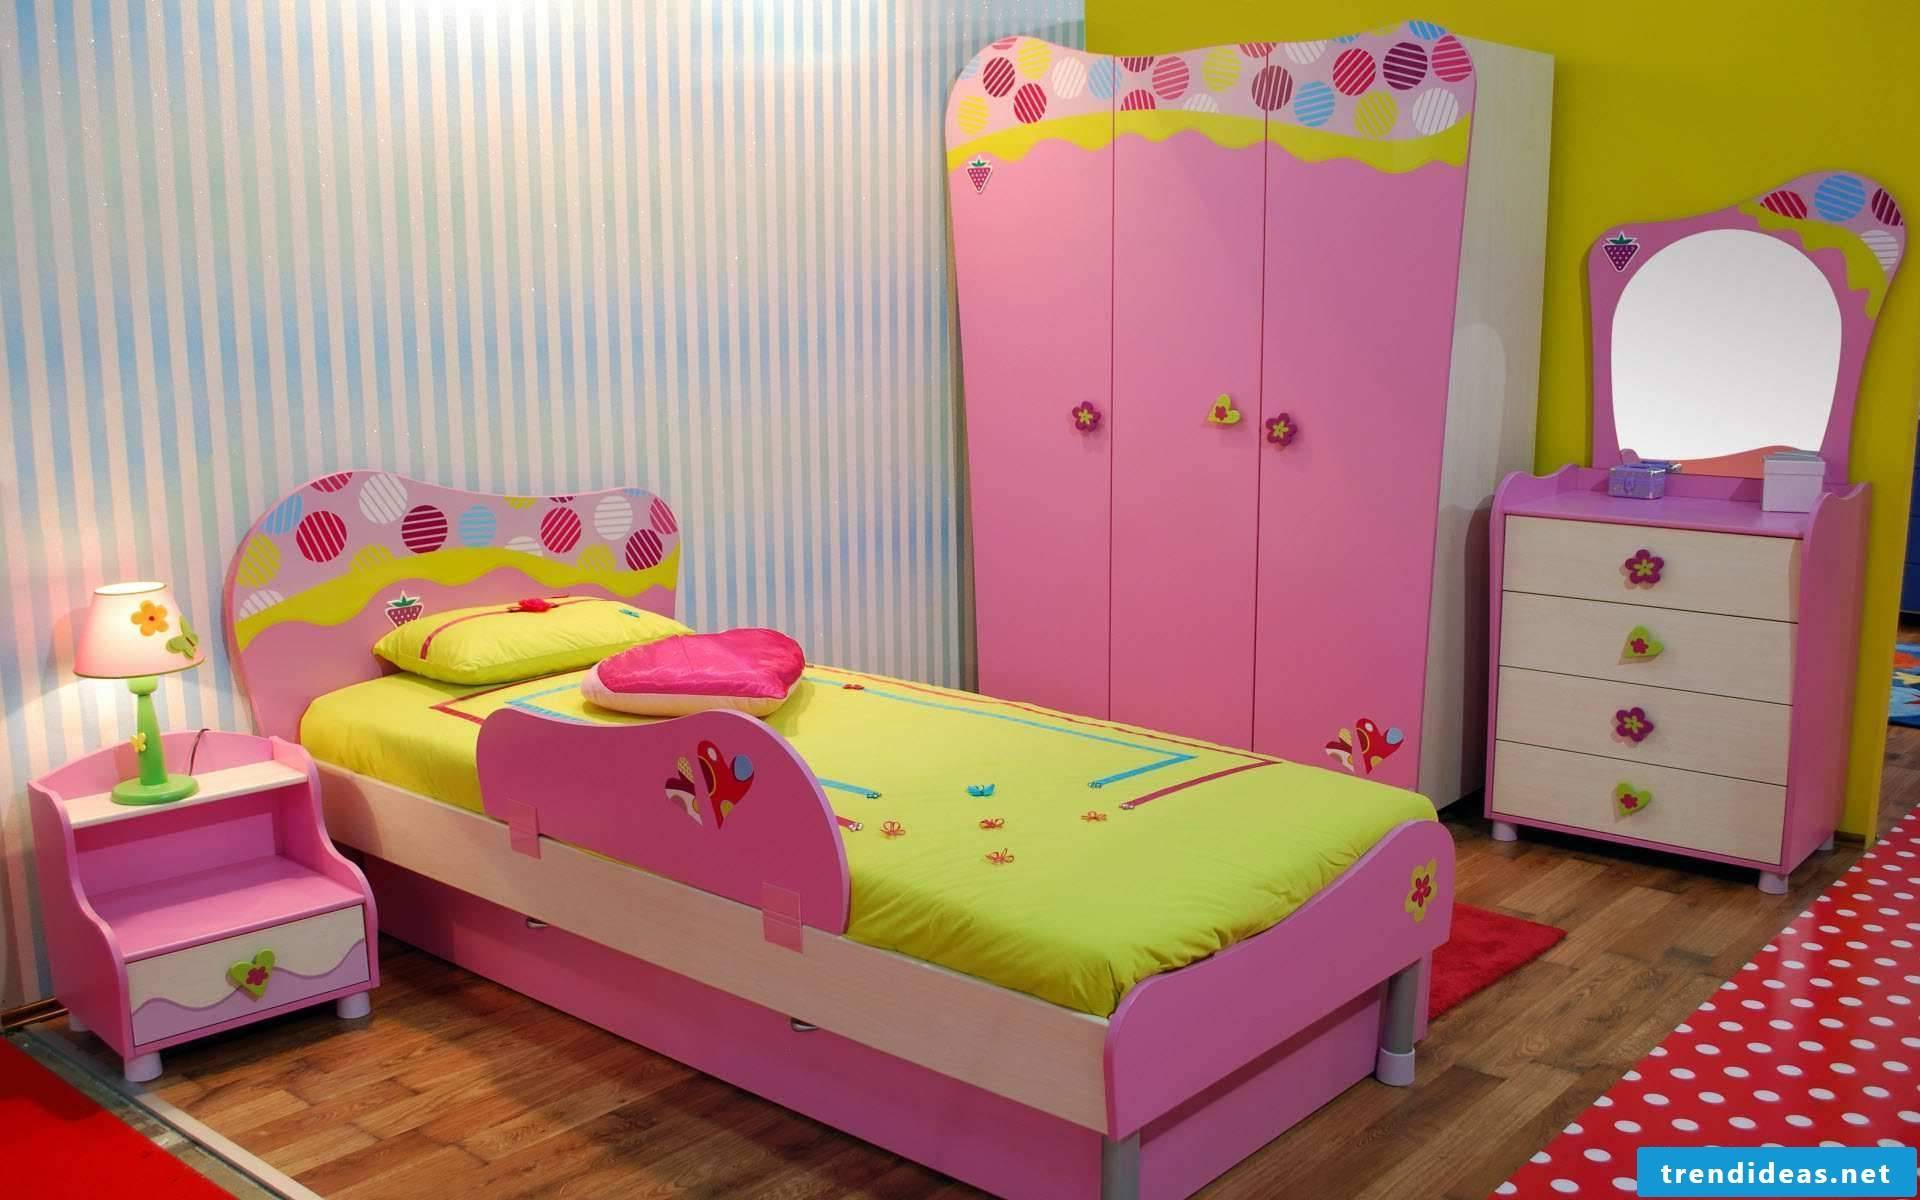 Girl's room in pink - colorful and cozy